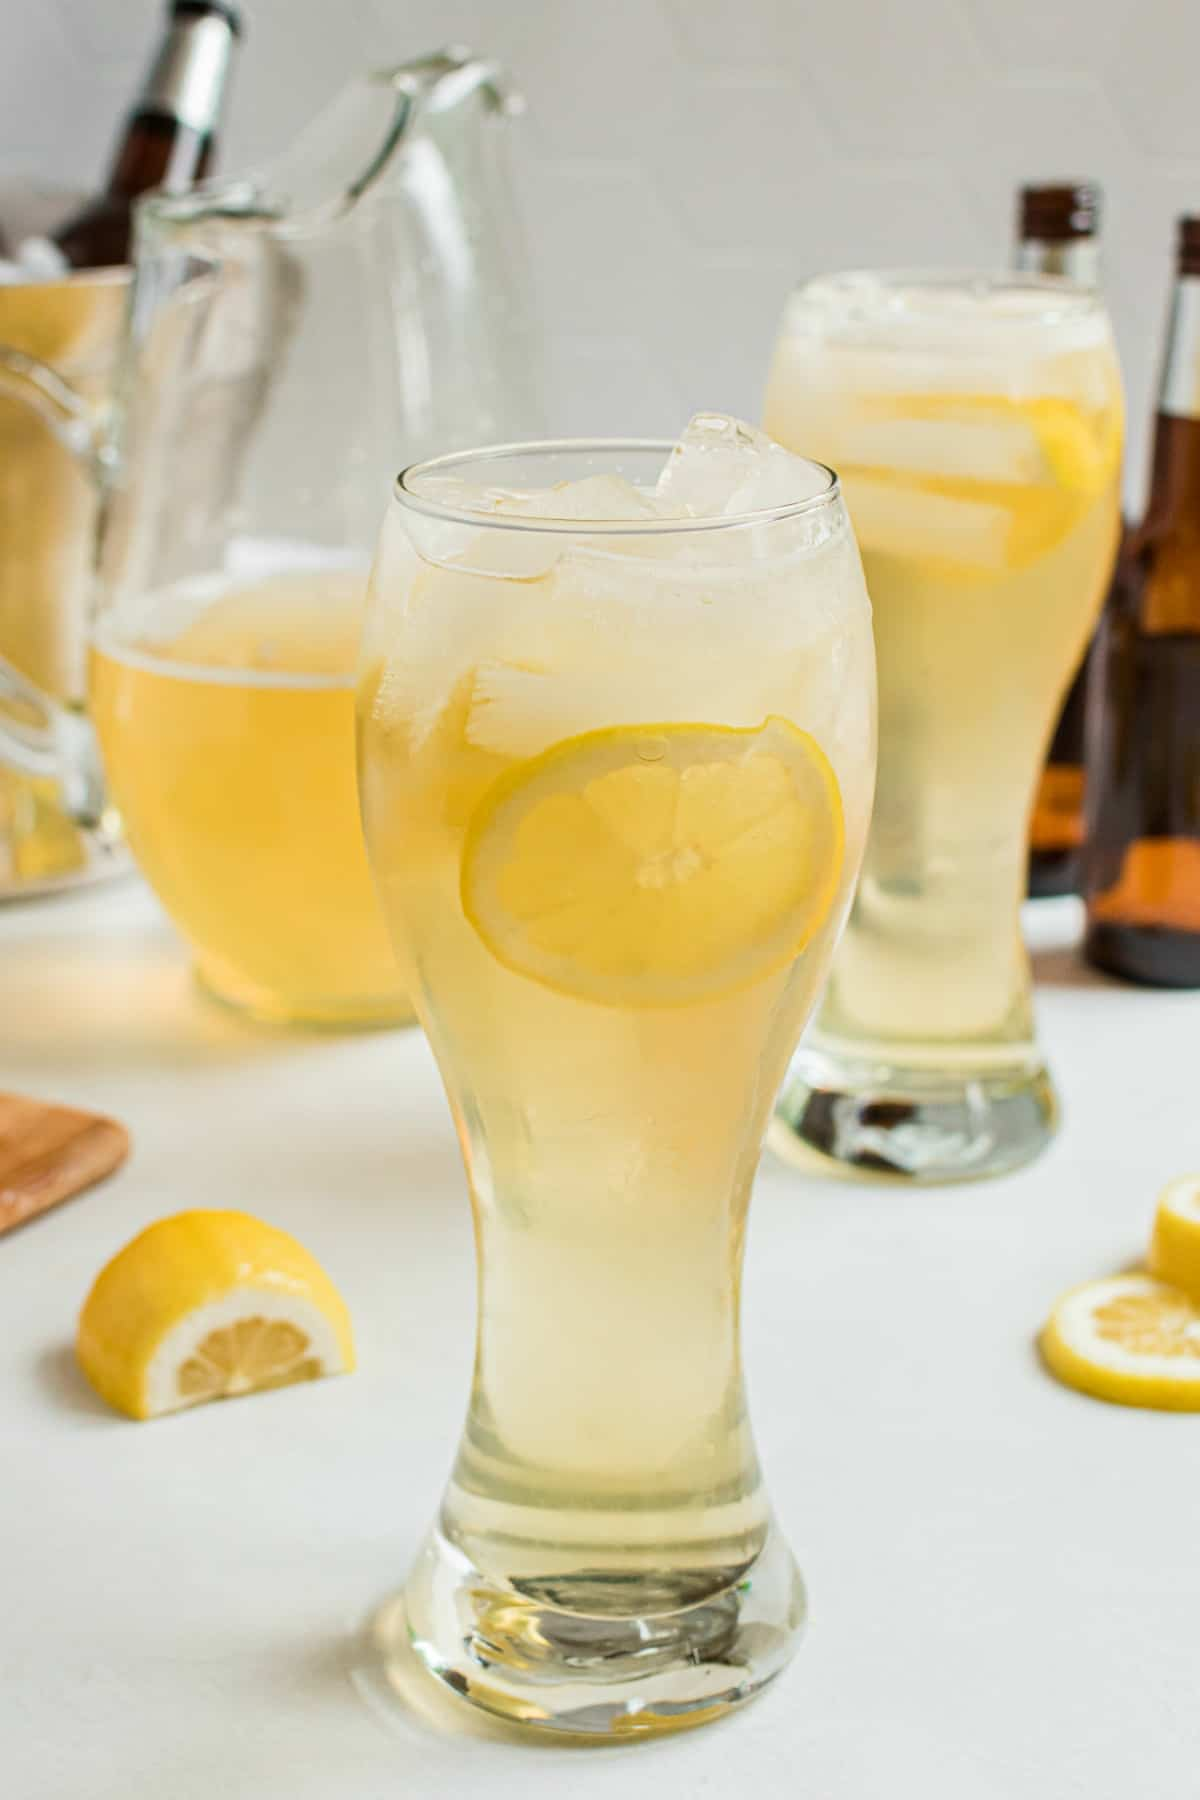 Pilsner glass with lemon shandy made from scratch.